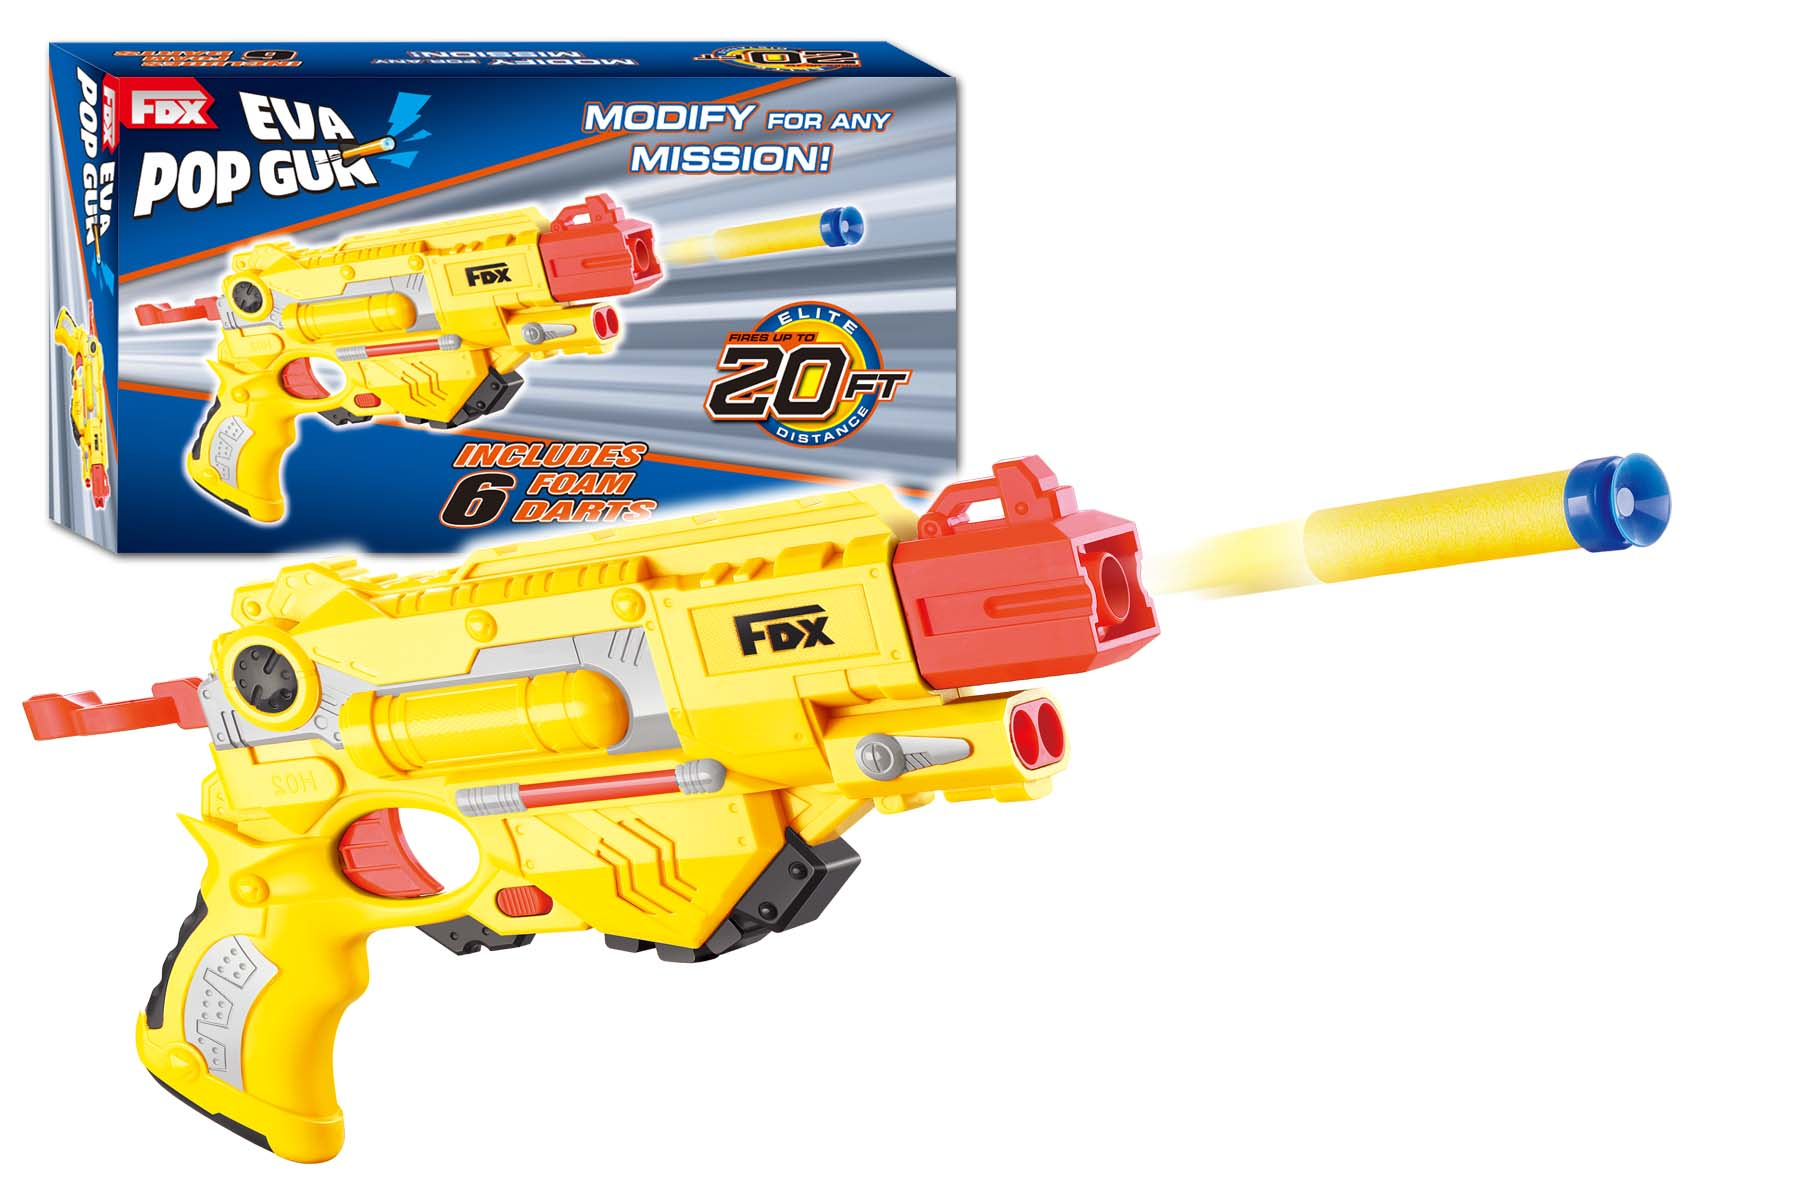 2014 Hot Sale Top Fasion Clear Blue > 6 Years Old Transparent Nerf Guns Toy  Pistol Soft Bullet Gun Boy Child 288 1-in Toy Guns from Toys & Hobbies on  ...